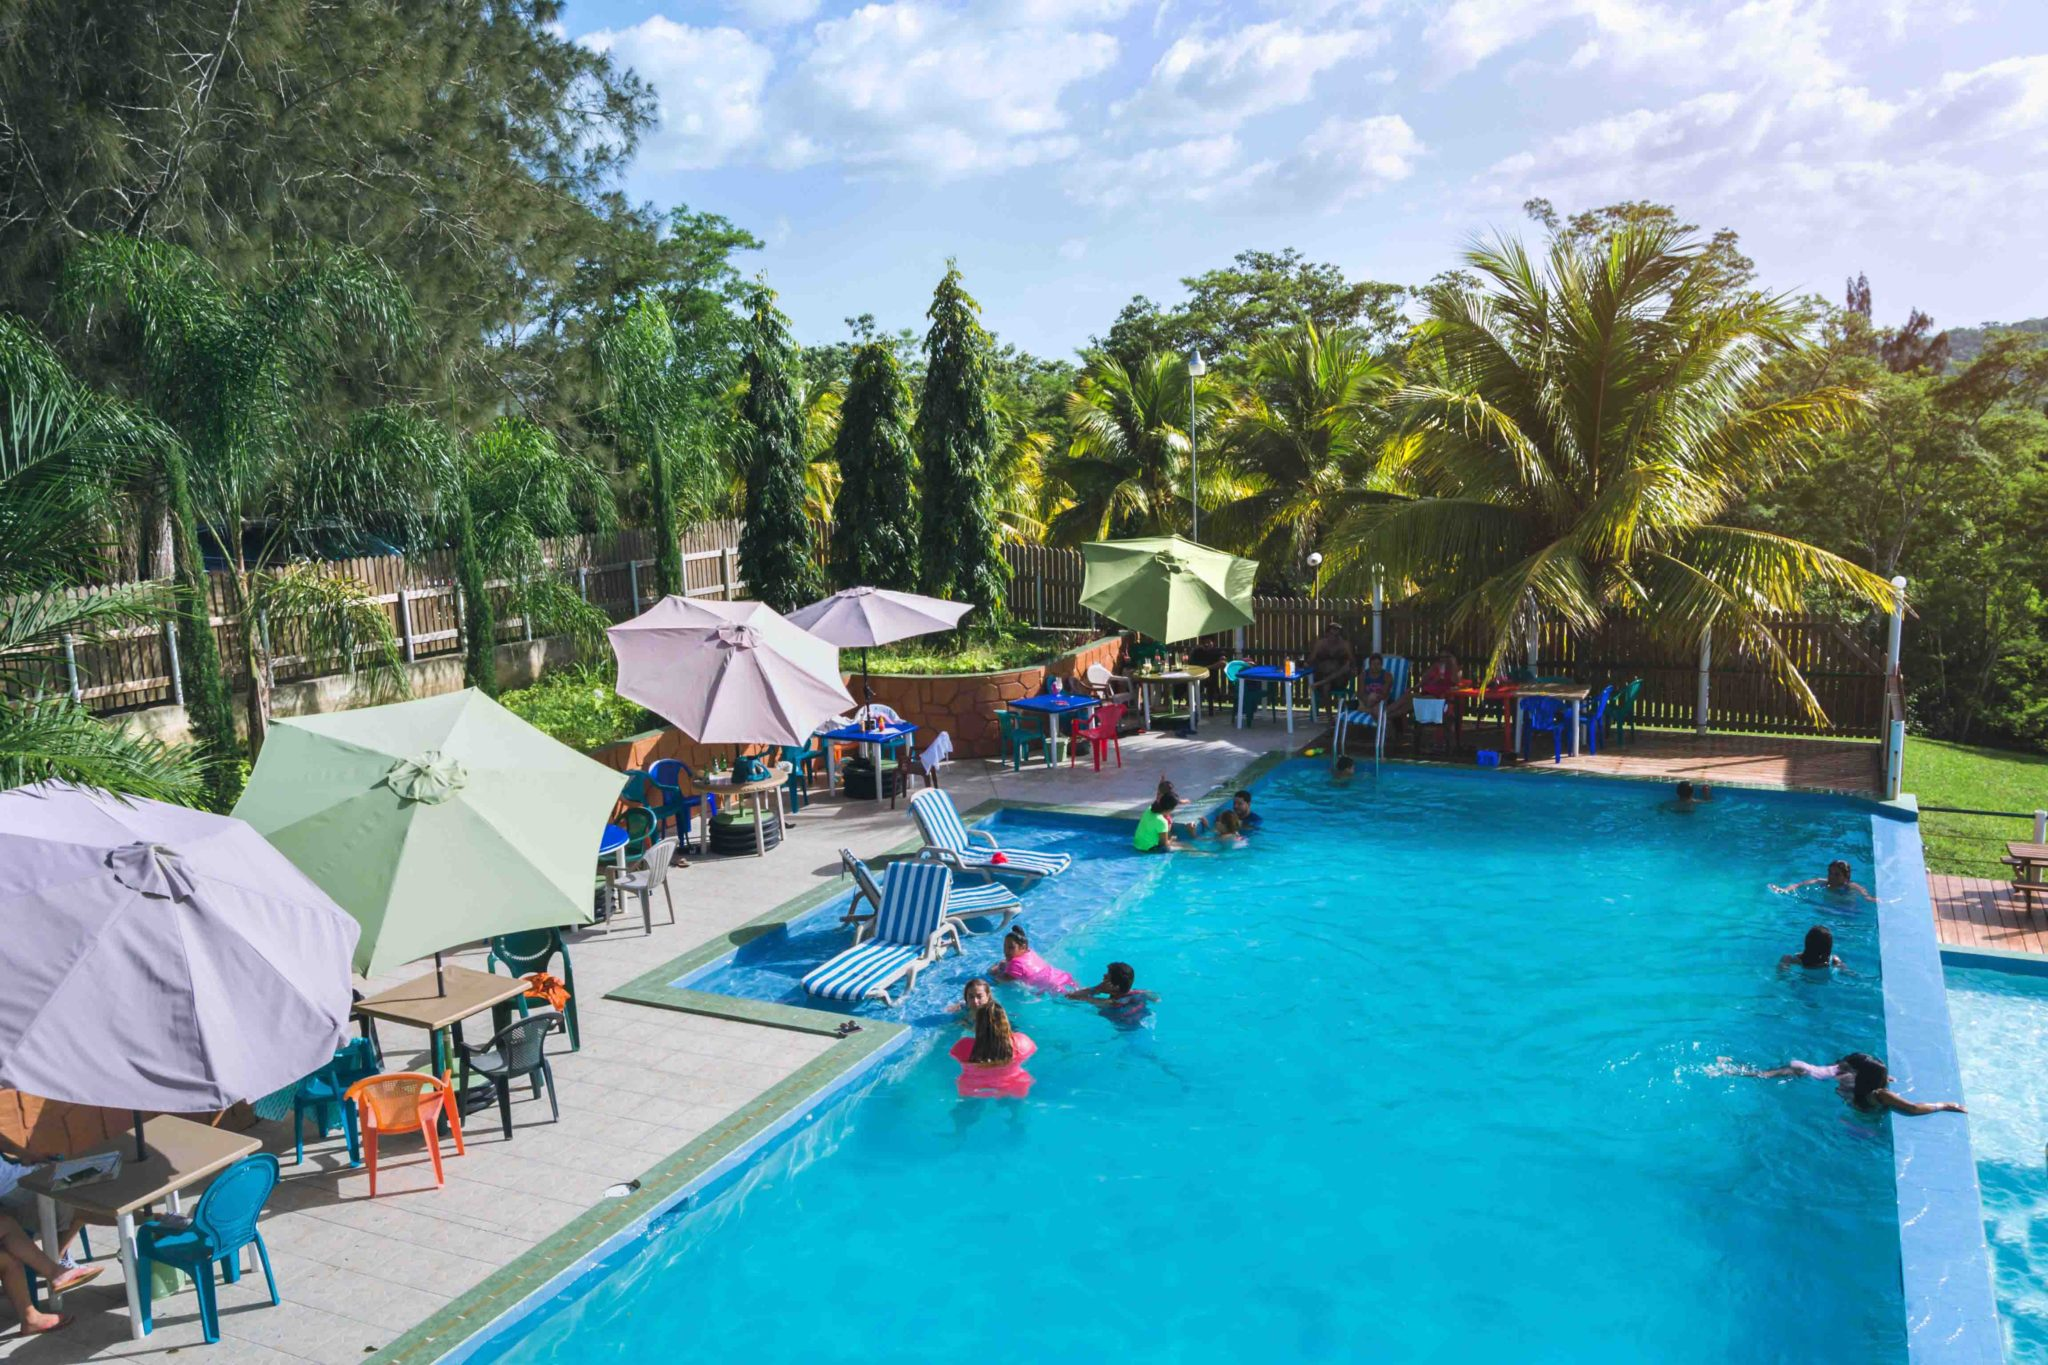 Belize-Pool-area-and-umbrellas